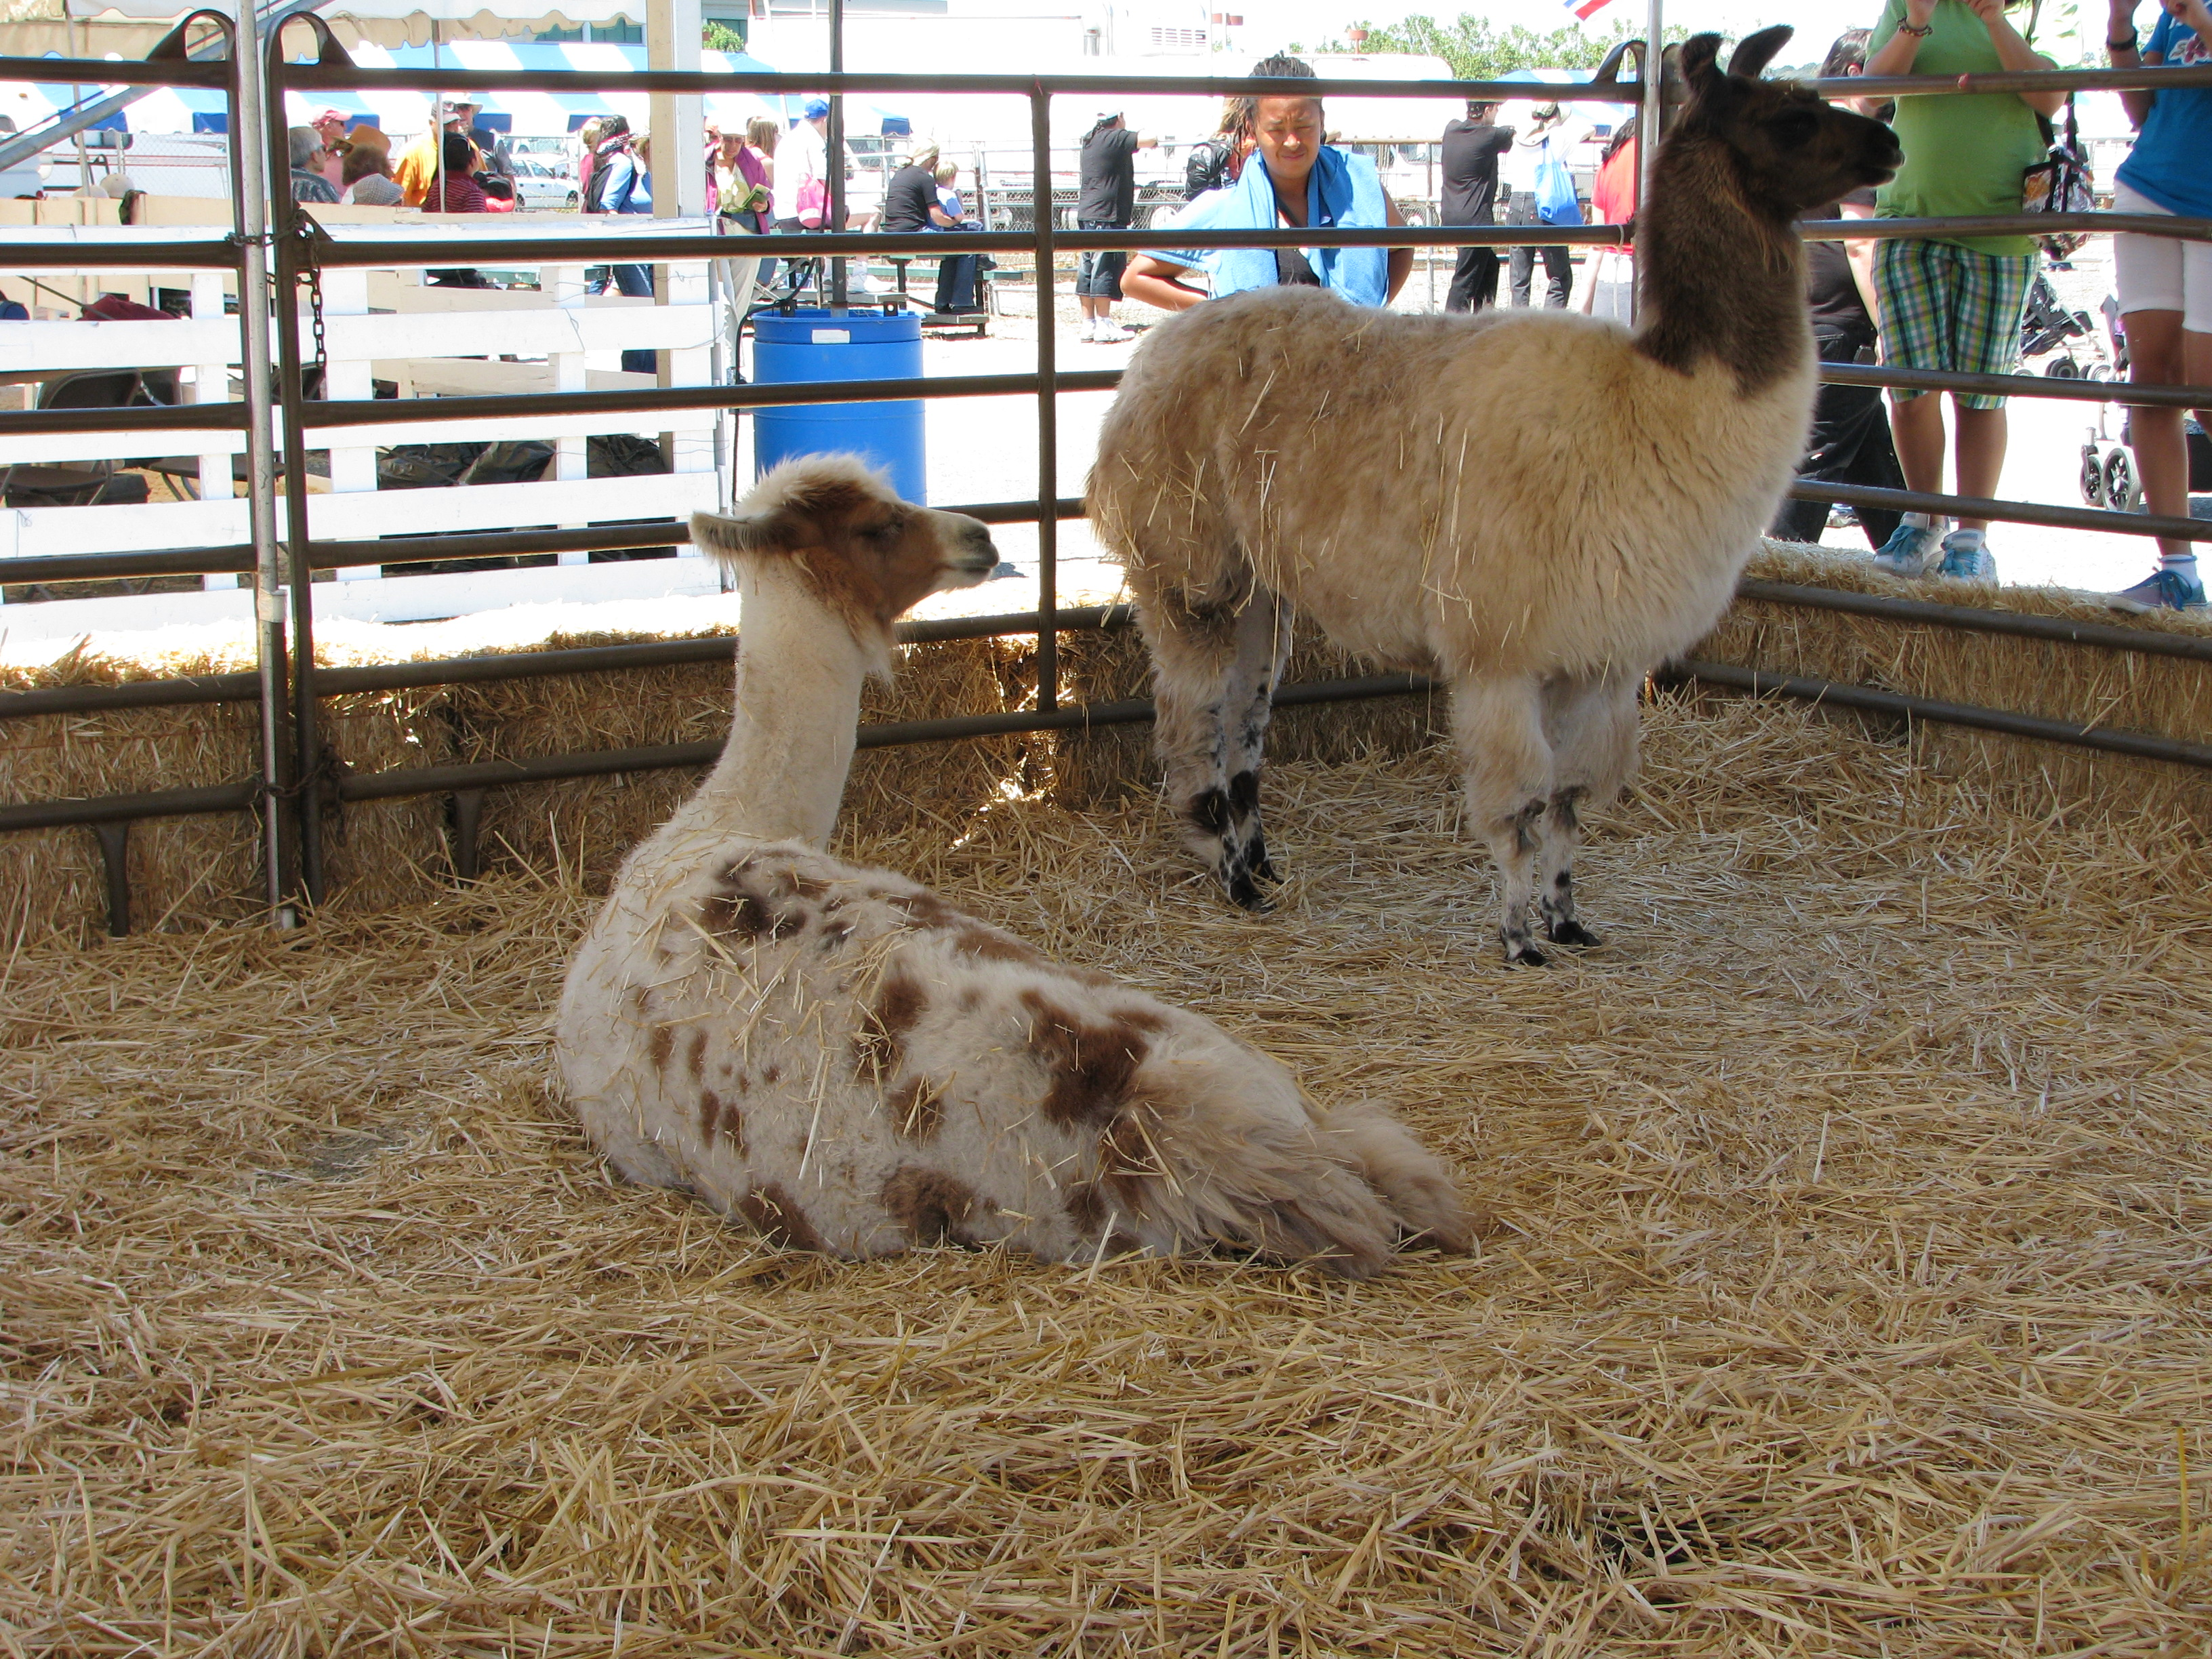 Llamas at the Marin County Fair